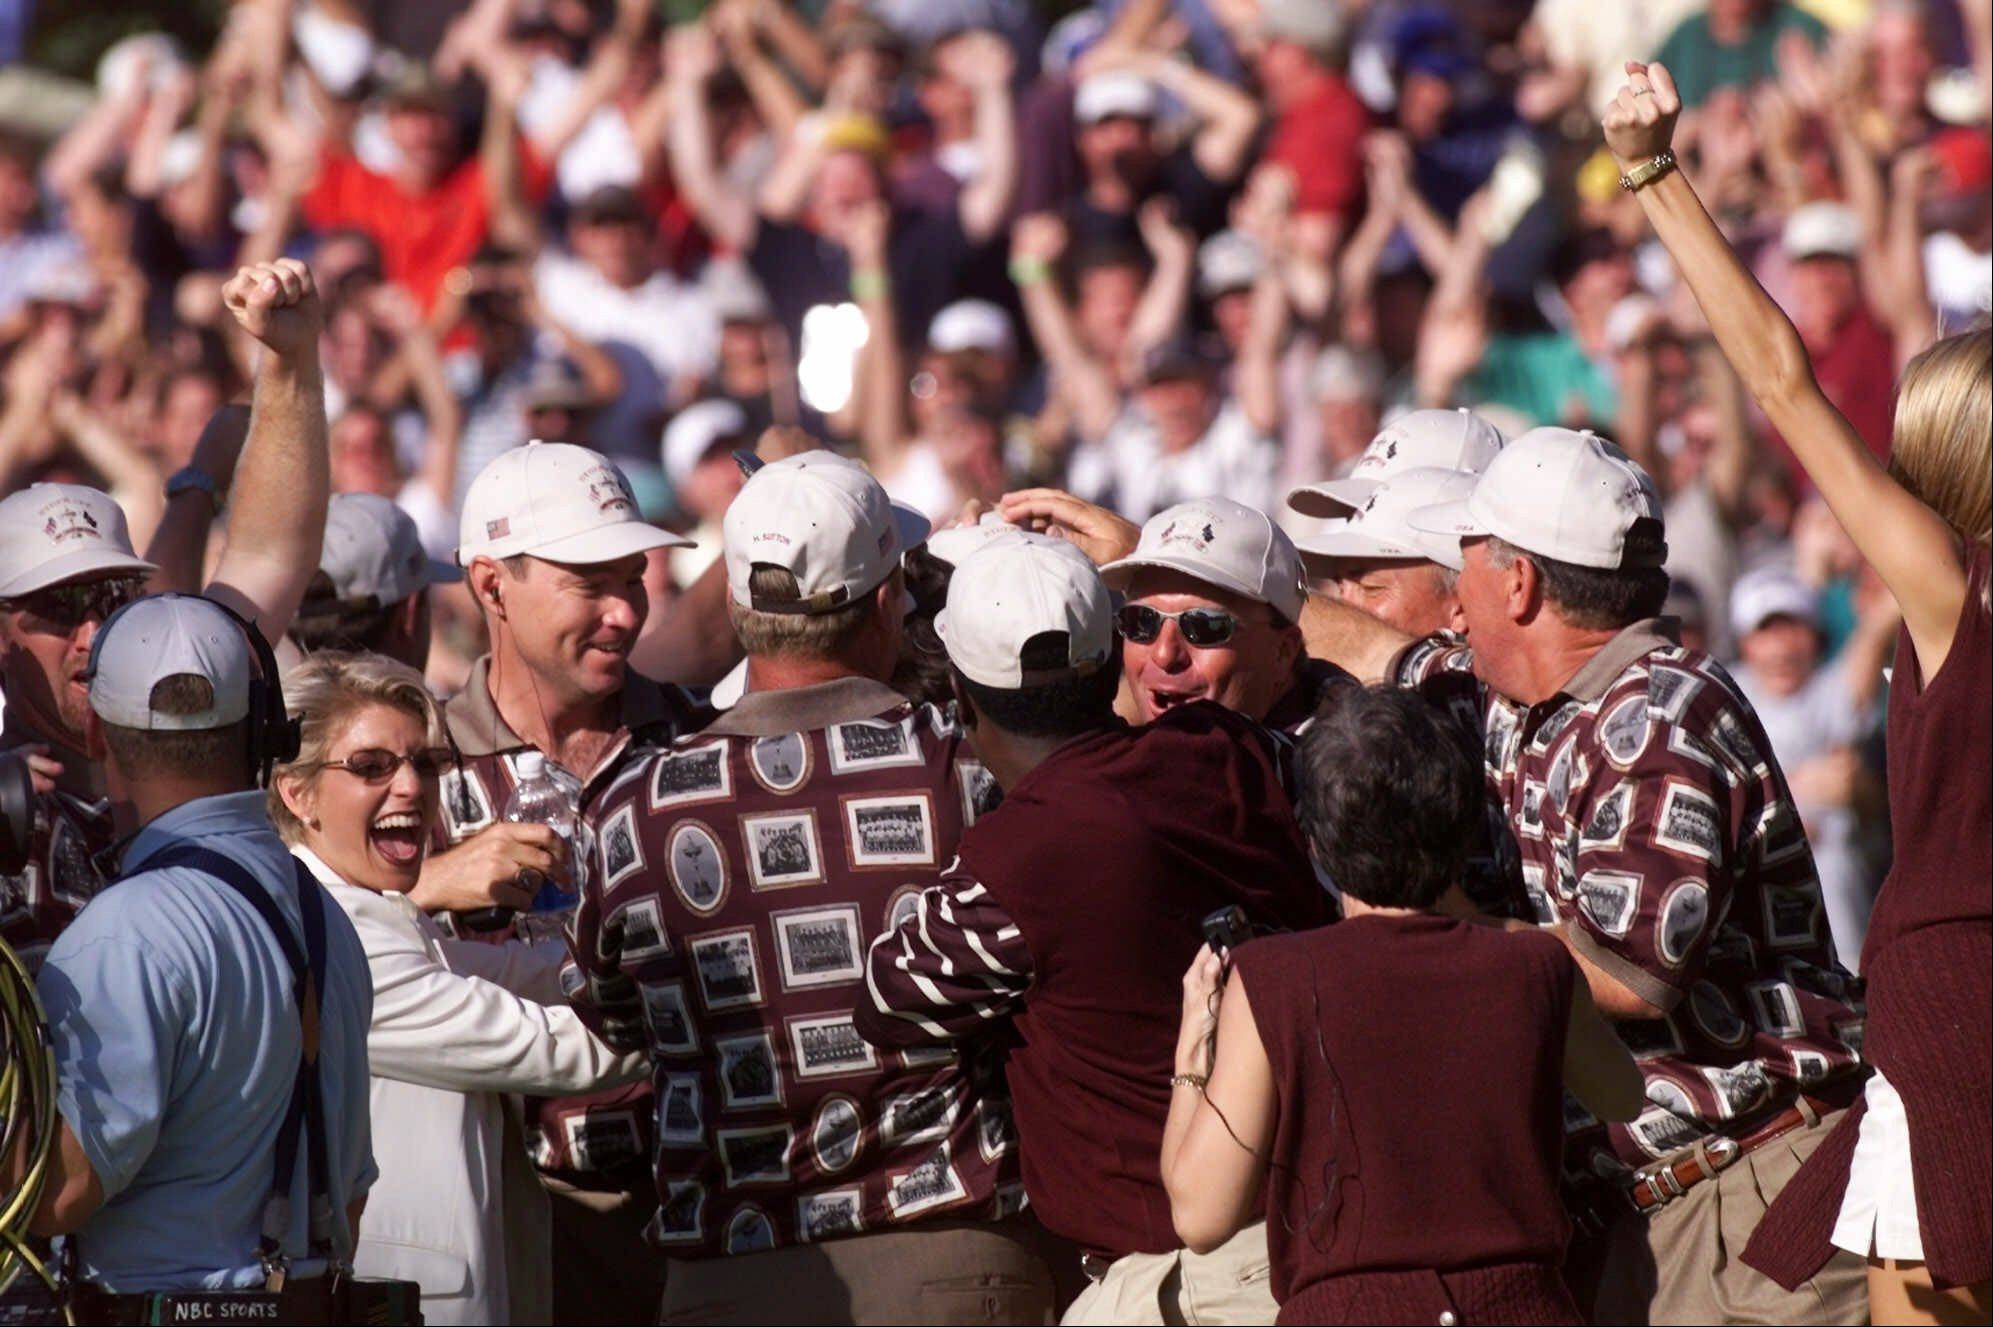 U.S. Ryder Cup players, wives, and team officials surround Justin Leonard on the 17th hole after his final round match Sunday, Sept. 26, 1999 in Brookline, Mass. The Americans were criticized for excessive celebration in reaction of their 1999 victory.